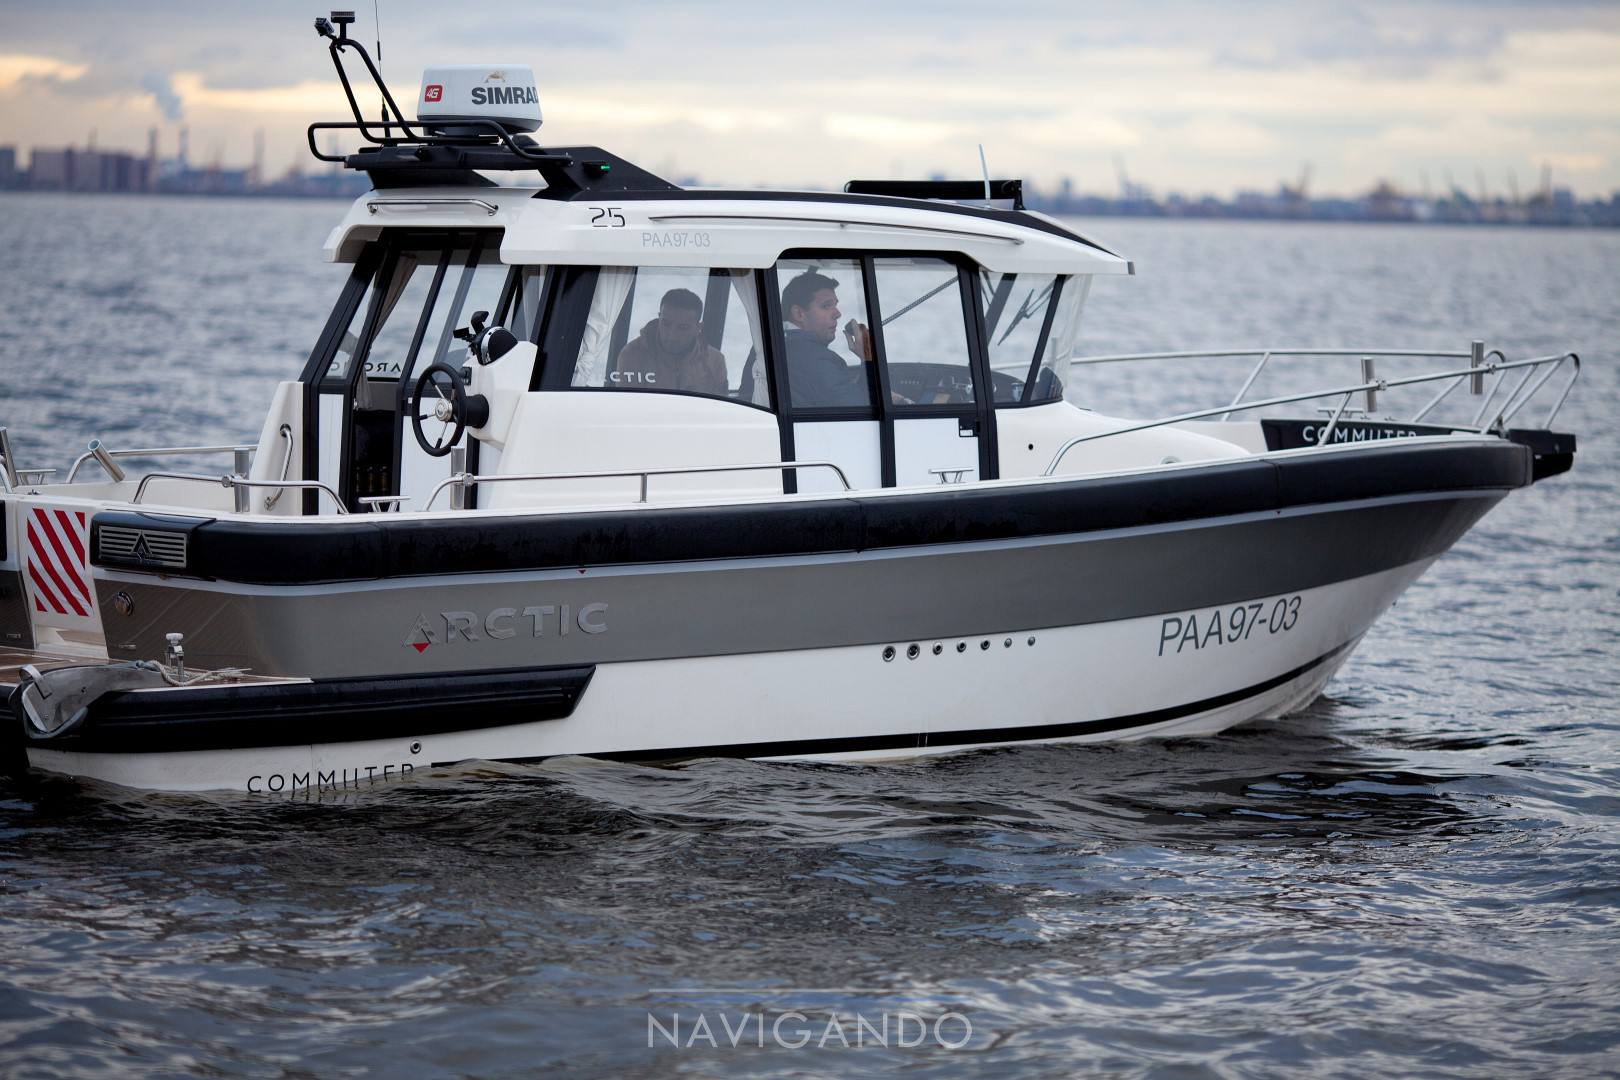 Artic Commuter 25 Motor boat new for sale